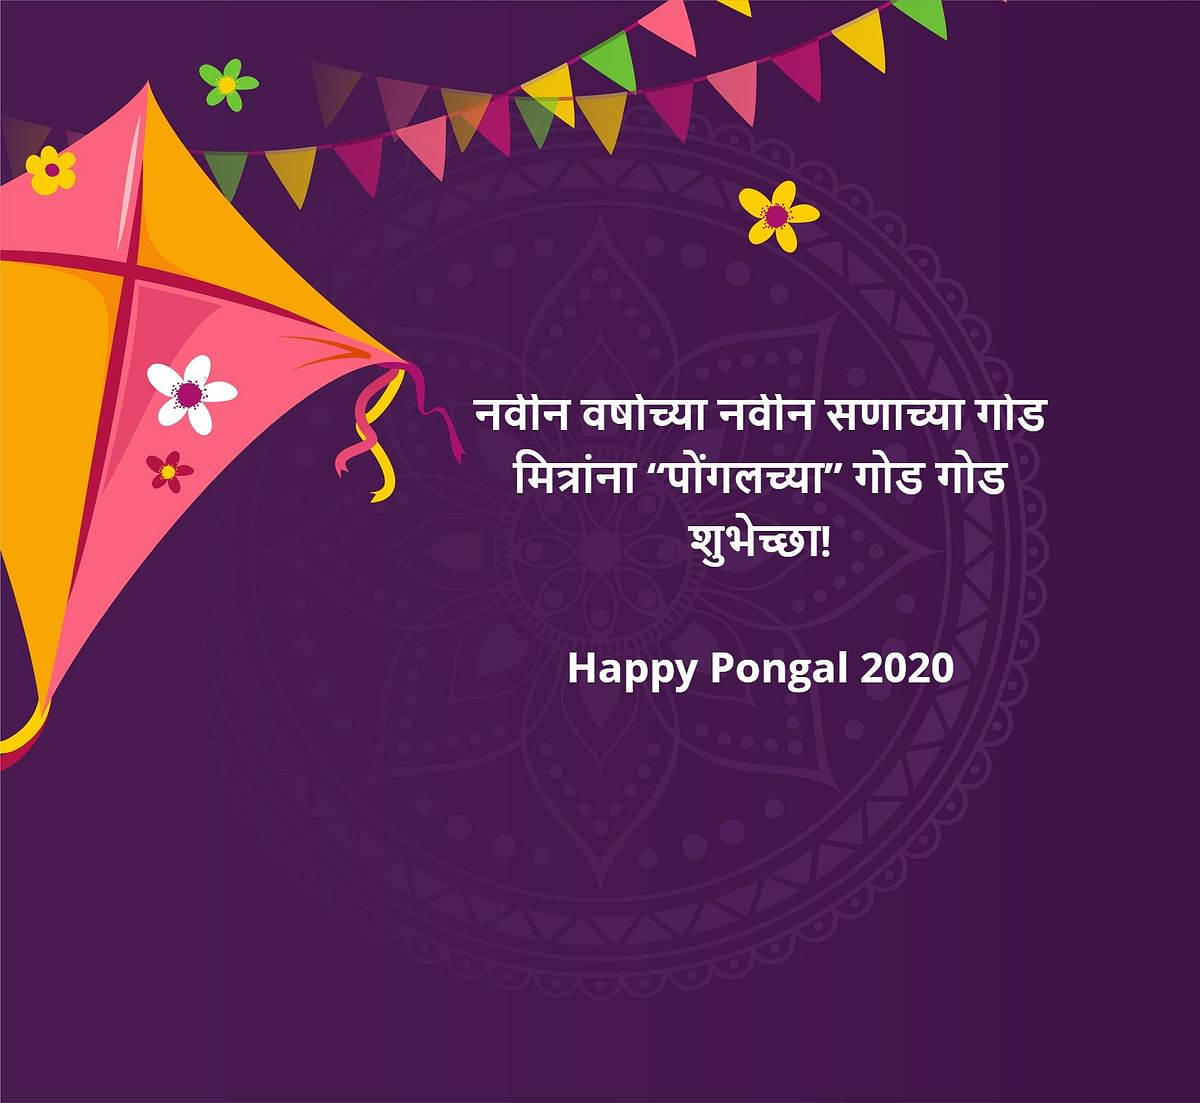 Pongal 2020 Wishes